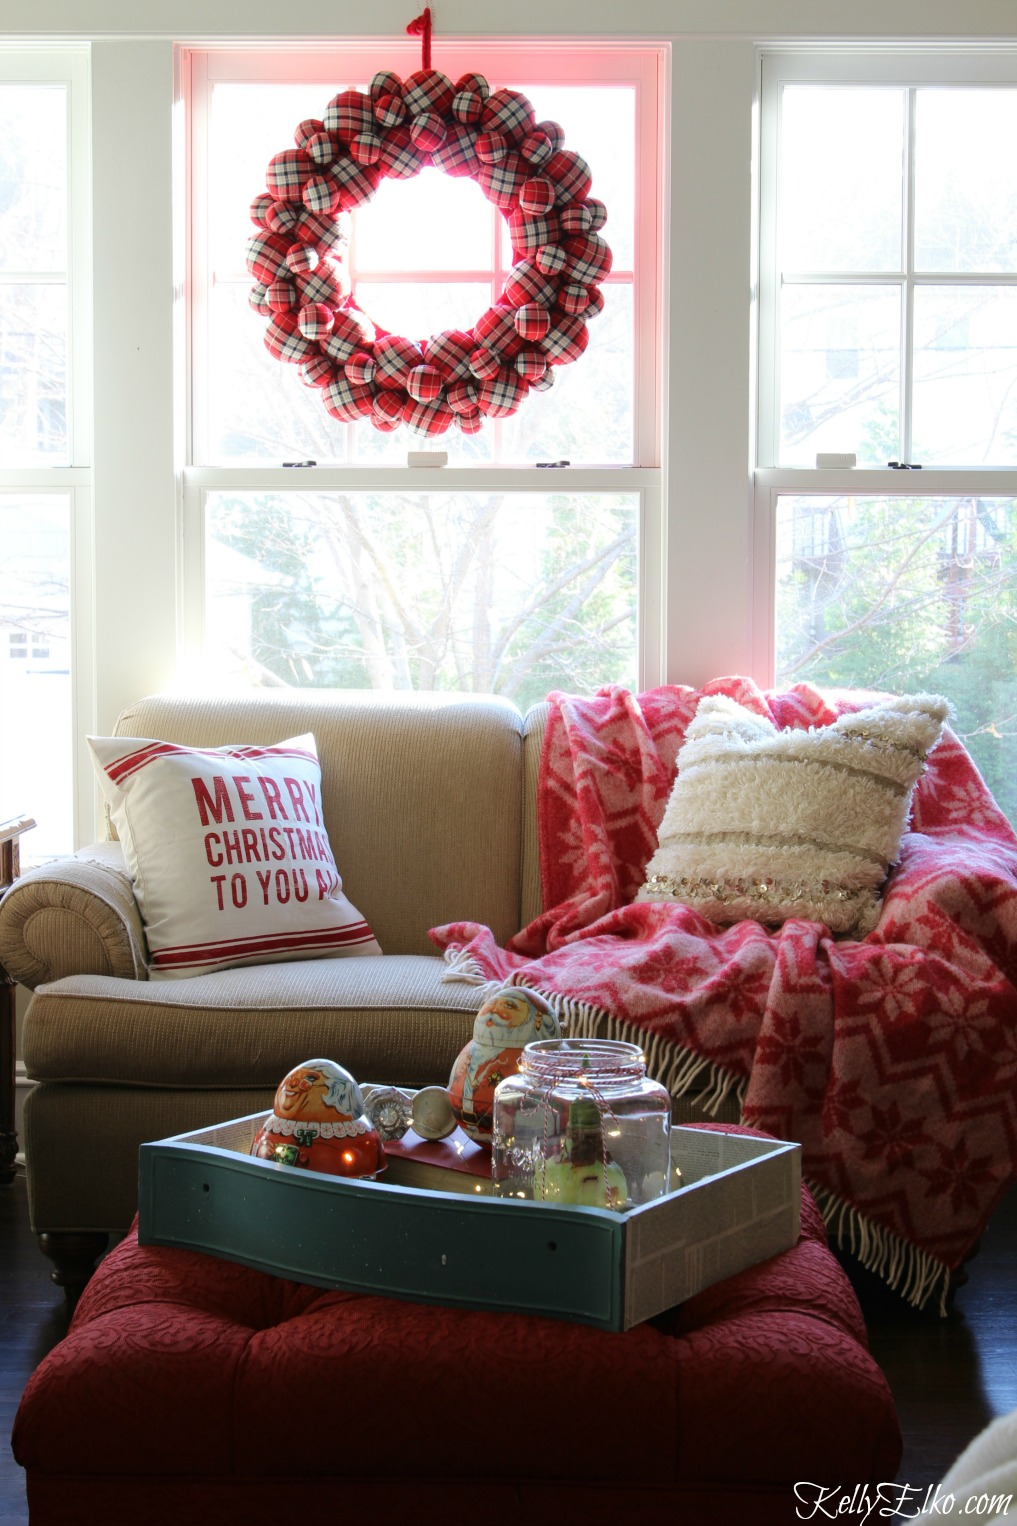 Cozy Christmas family room - love the huge plaid wreath and red snowflake throw blanket kellyelko.com